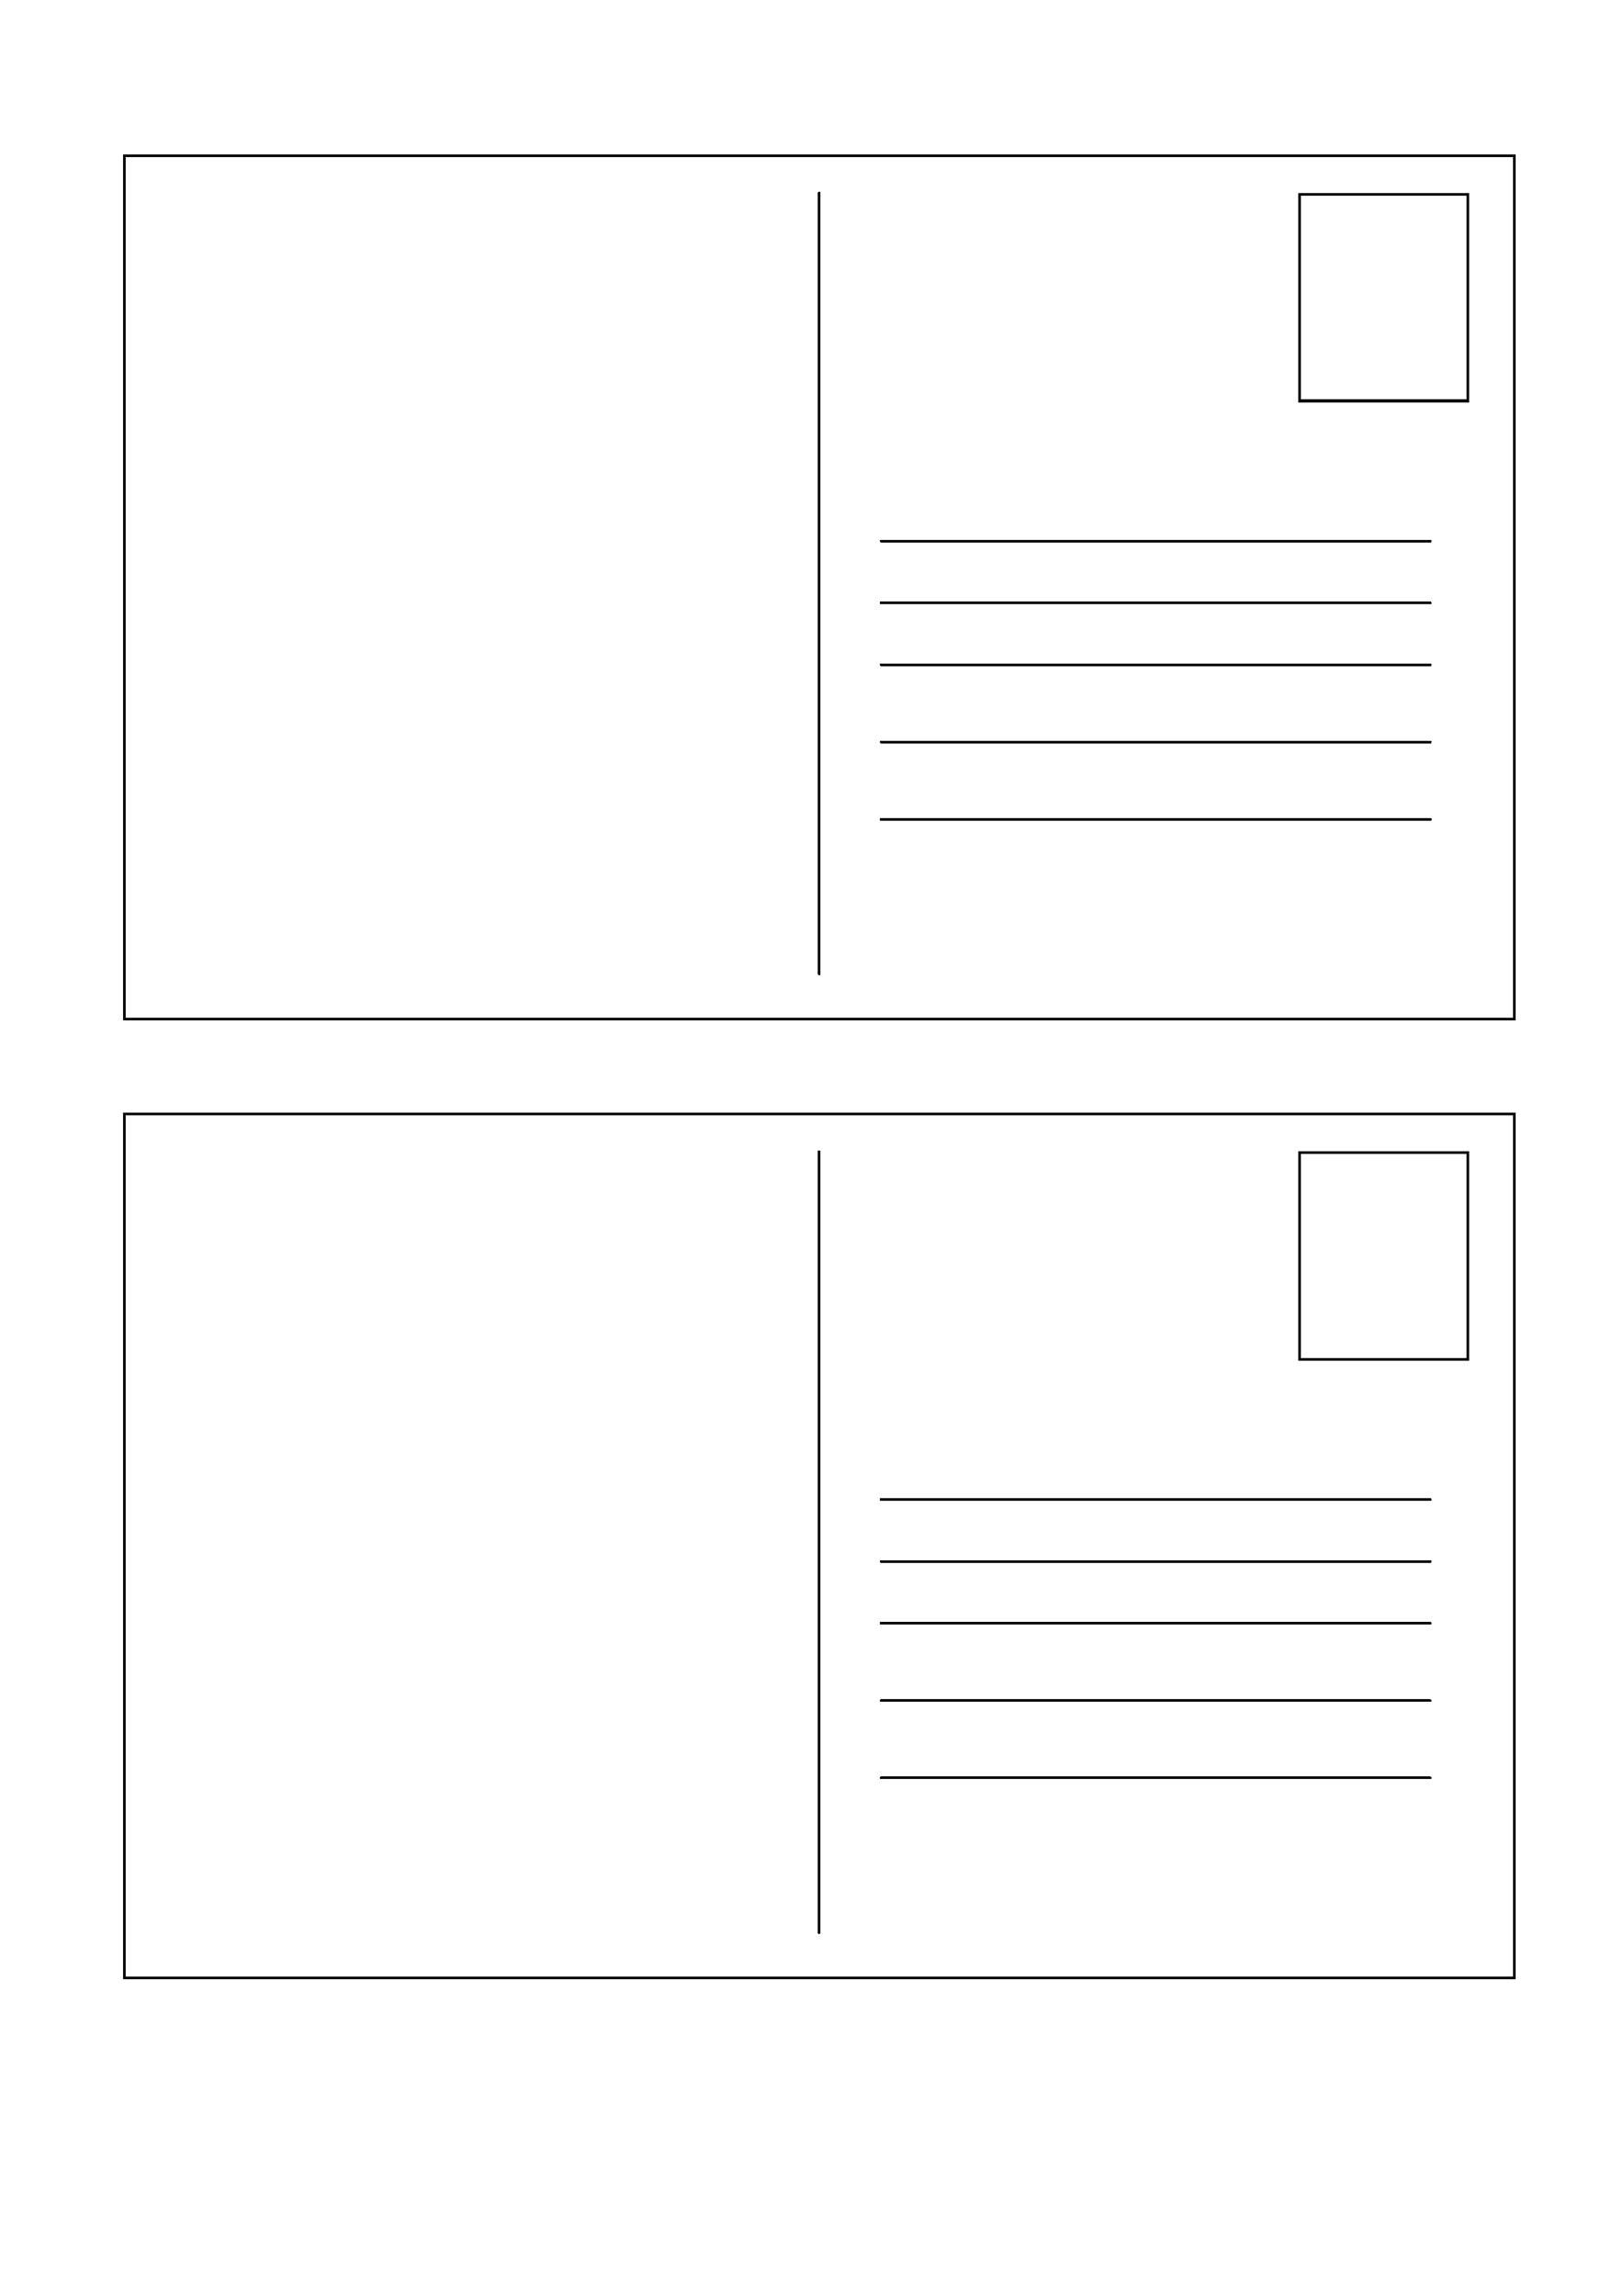 007 Marvelou Busines Postcard Template Microsoft Word Picture Full